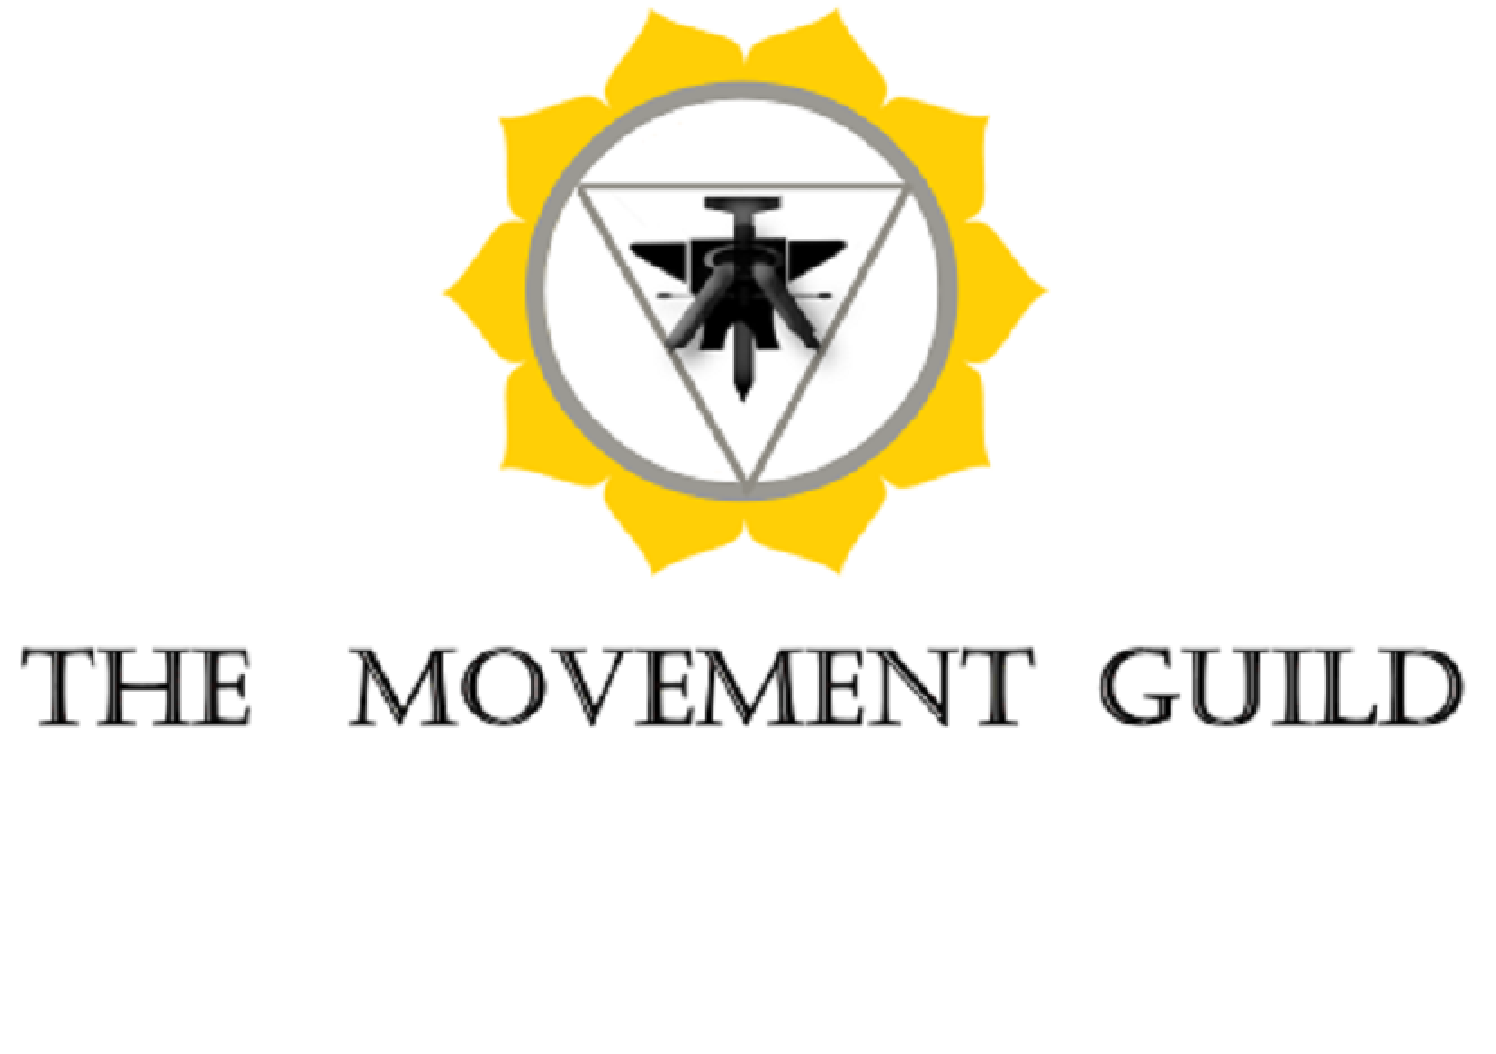 The Movement Guild